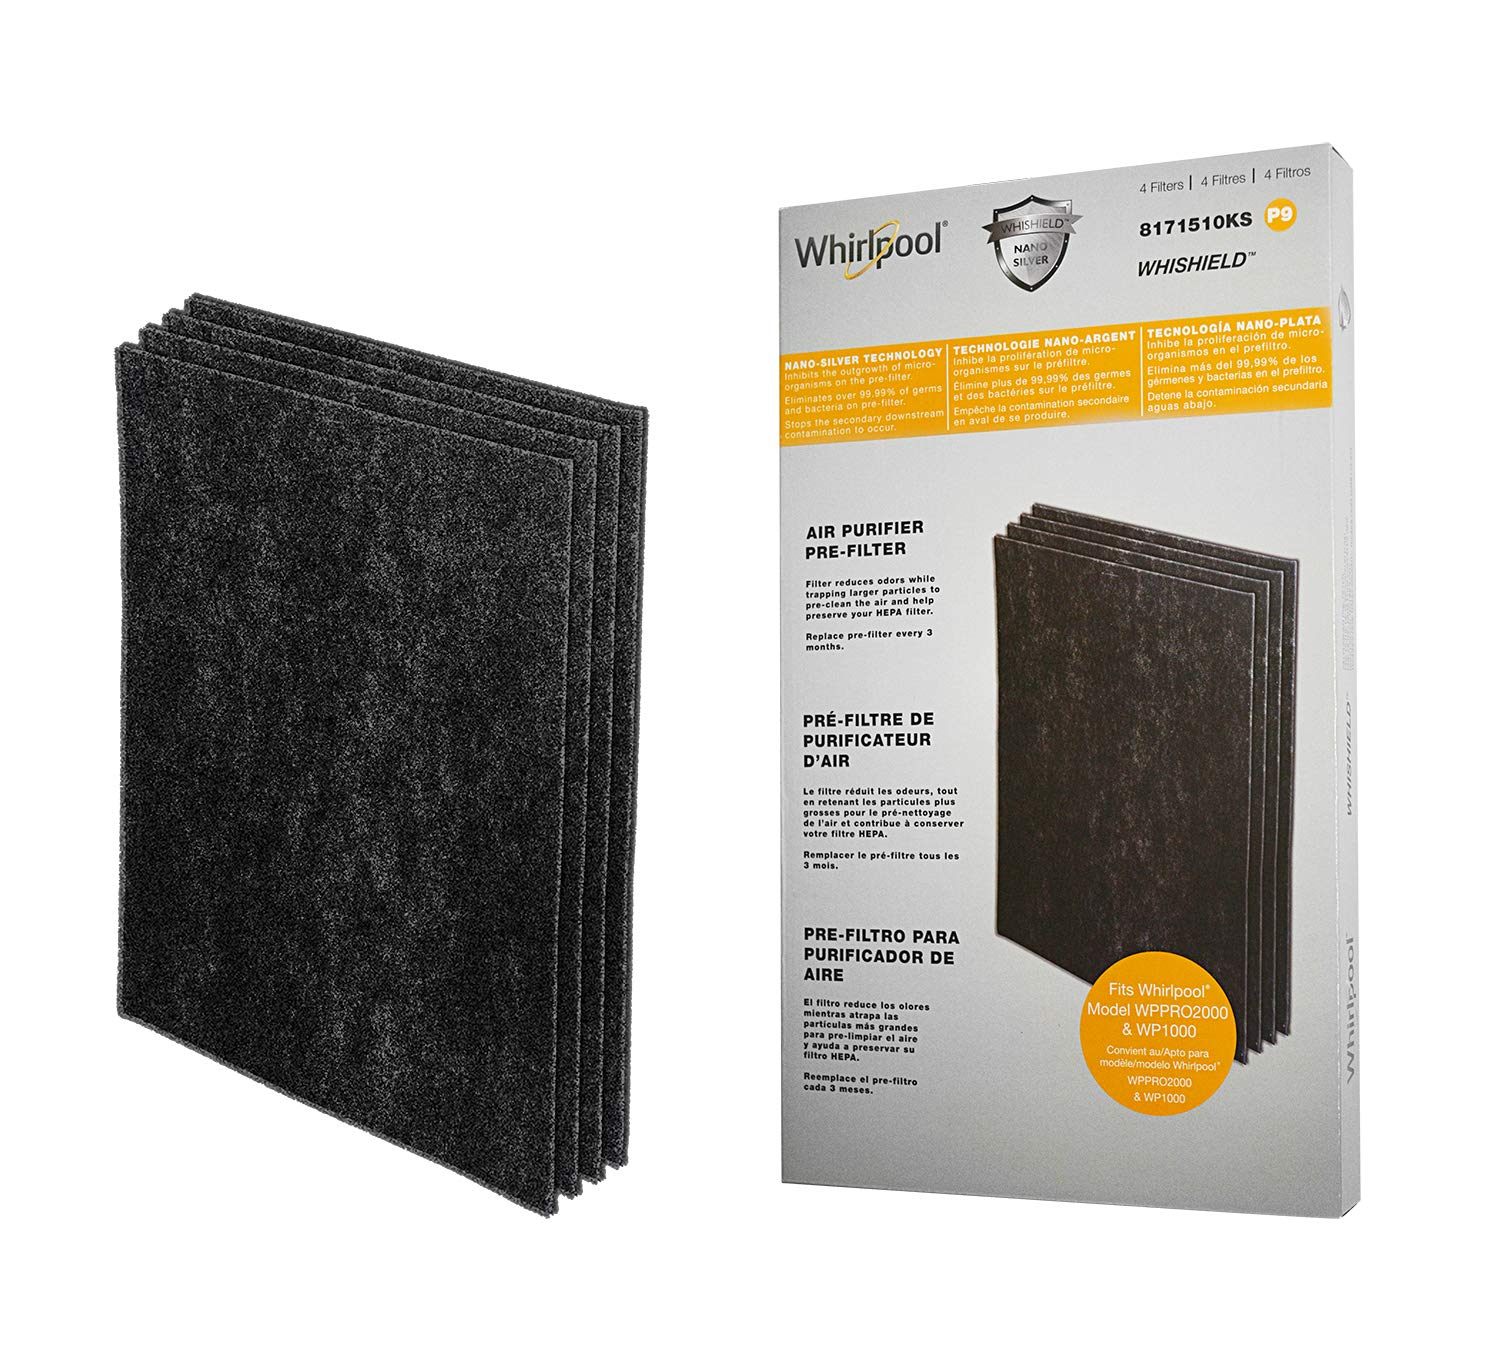 Whirlpool 8171510KS Genuine Charcoal Pre-Filter - Whishield Anti-Microbial Activated - Replacement Fit for Air Purifier WP1000, WPPRO2000, Extra Large - 4 Pack